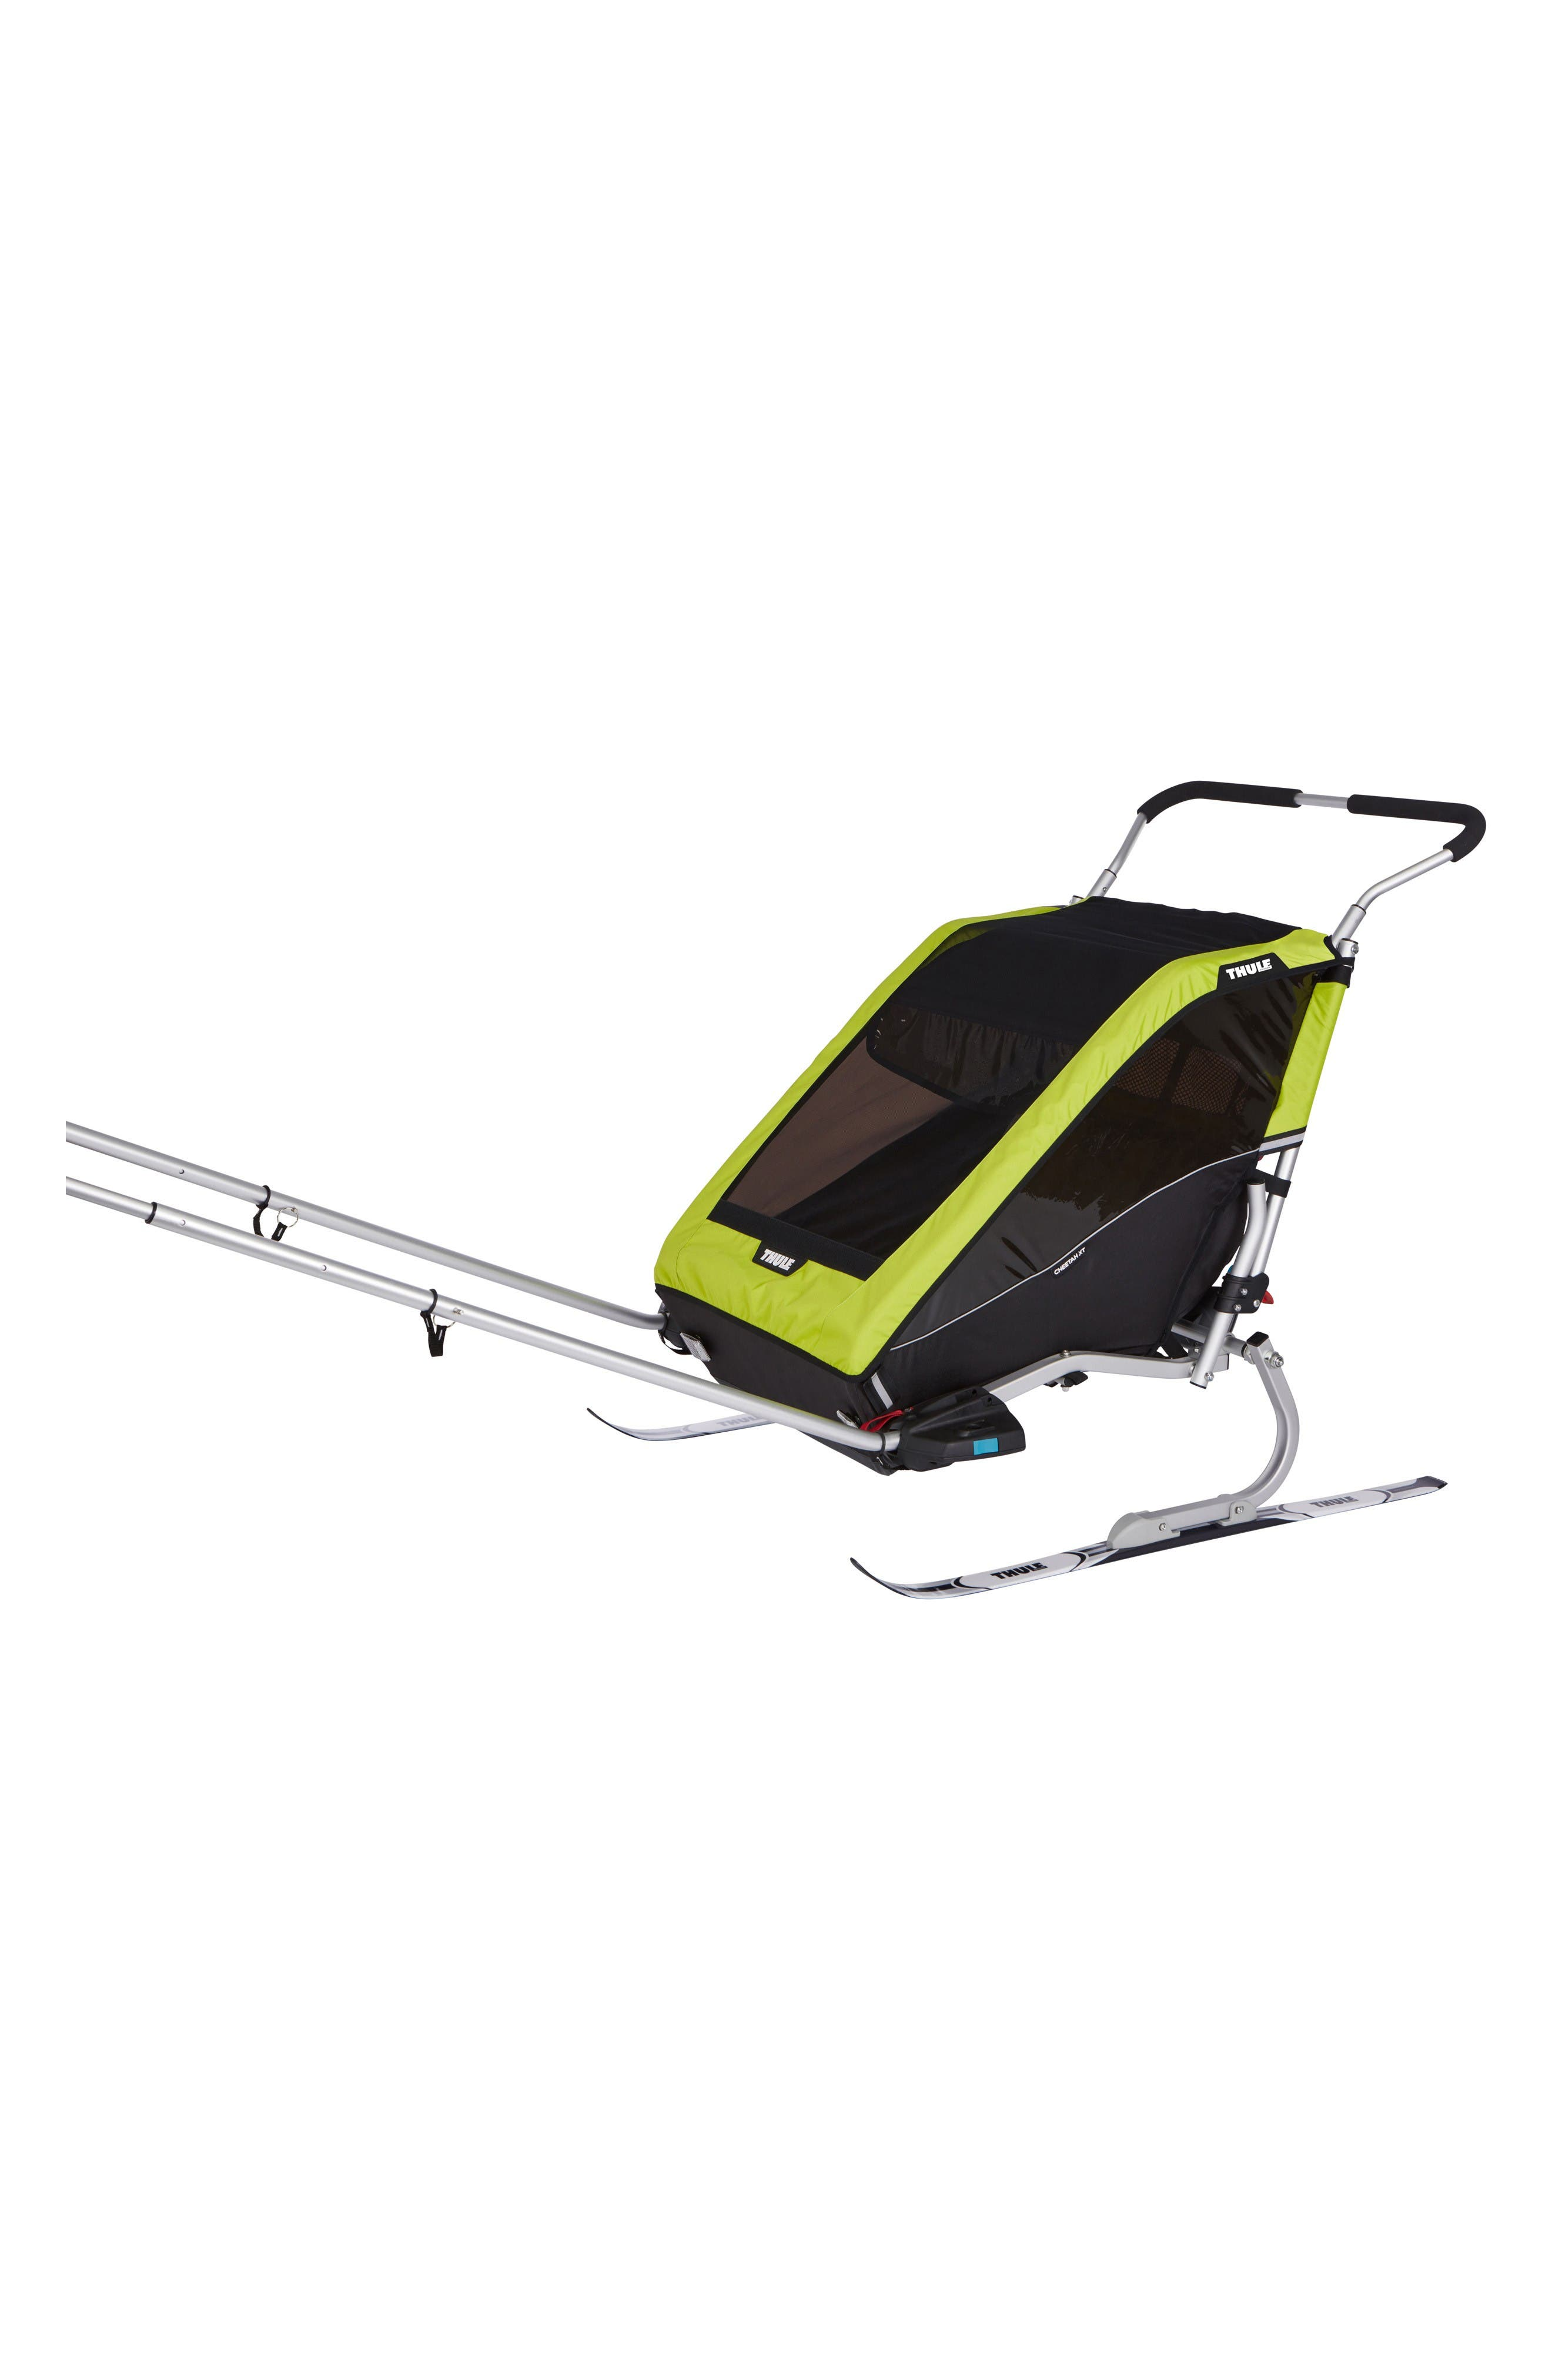 Chariot Cheetah XT 2 Multisport Double Cycle Trailer/Stroller,                             Alternate thumbnail 6, color,                             Chartreuse